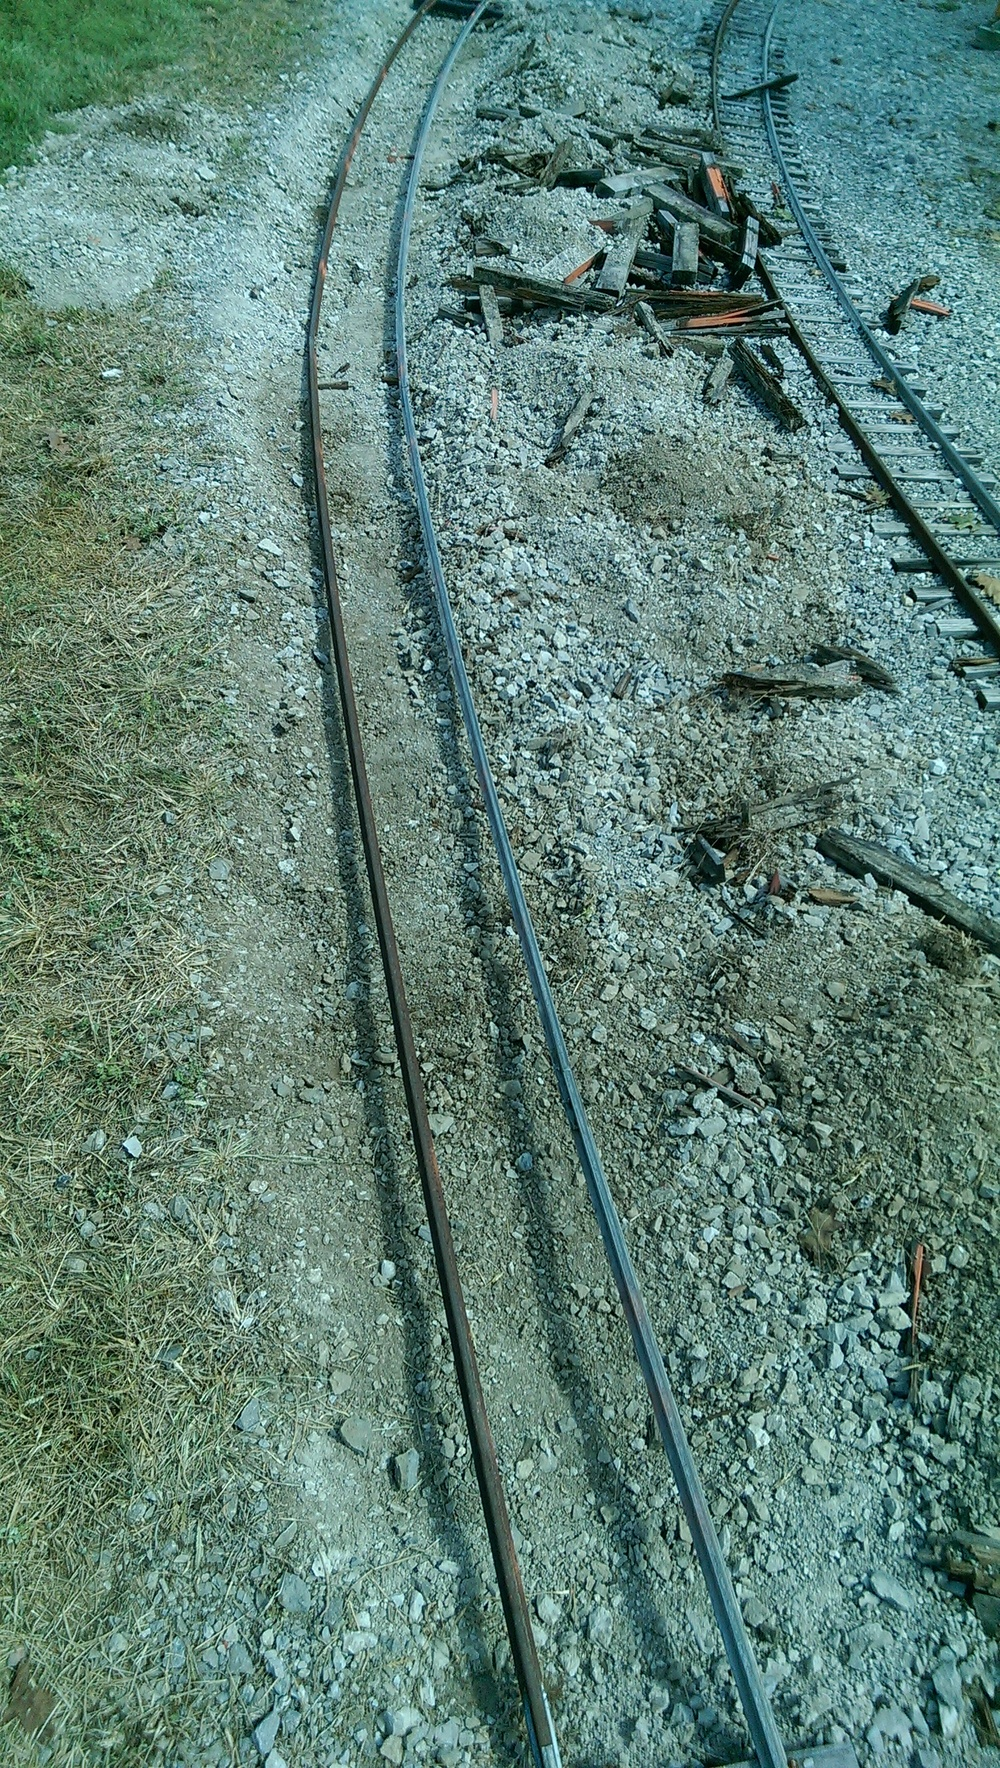 All the old ties have been removed from this section and ready for a new set of plastic and wood ties. This section of track is also located under some large trees, which causes the ties to deteriorate more rapidly then other areas. This section's repairs should be completed next work day.